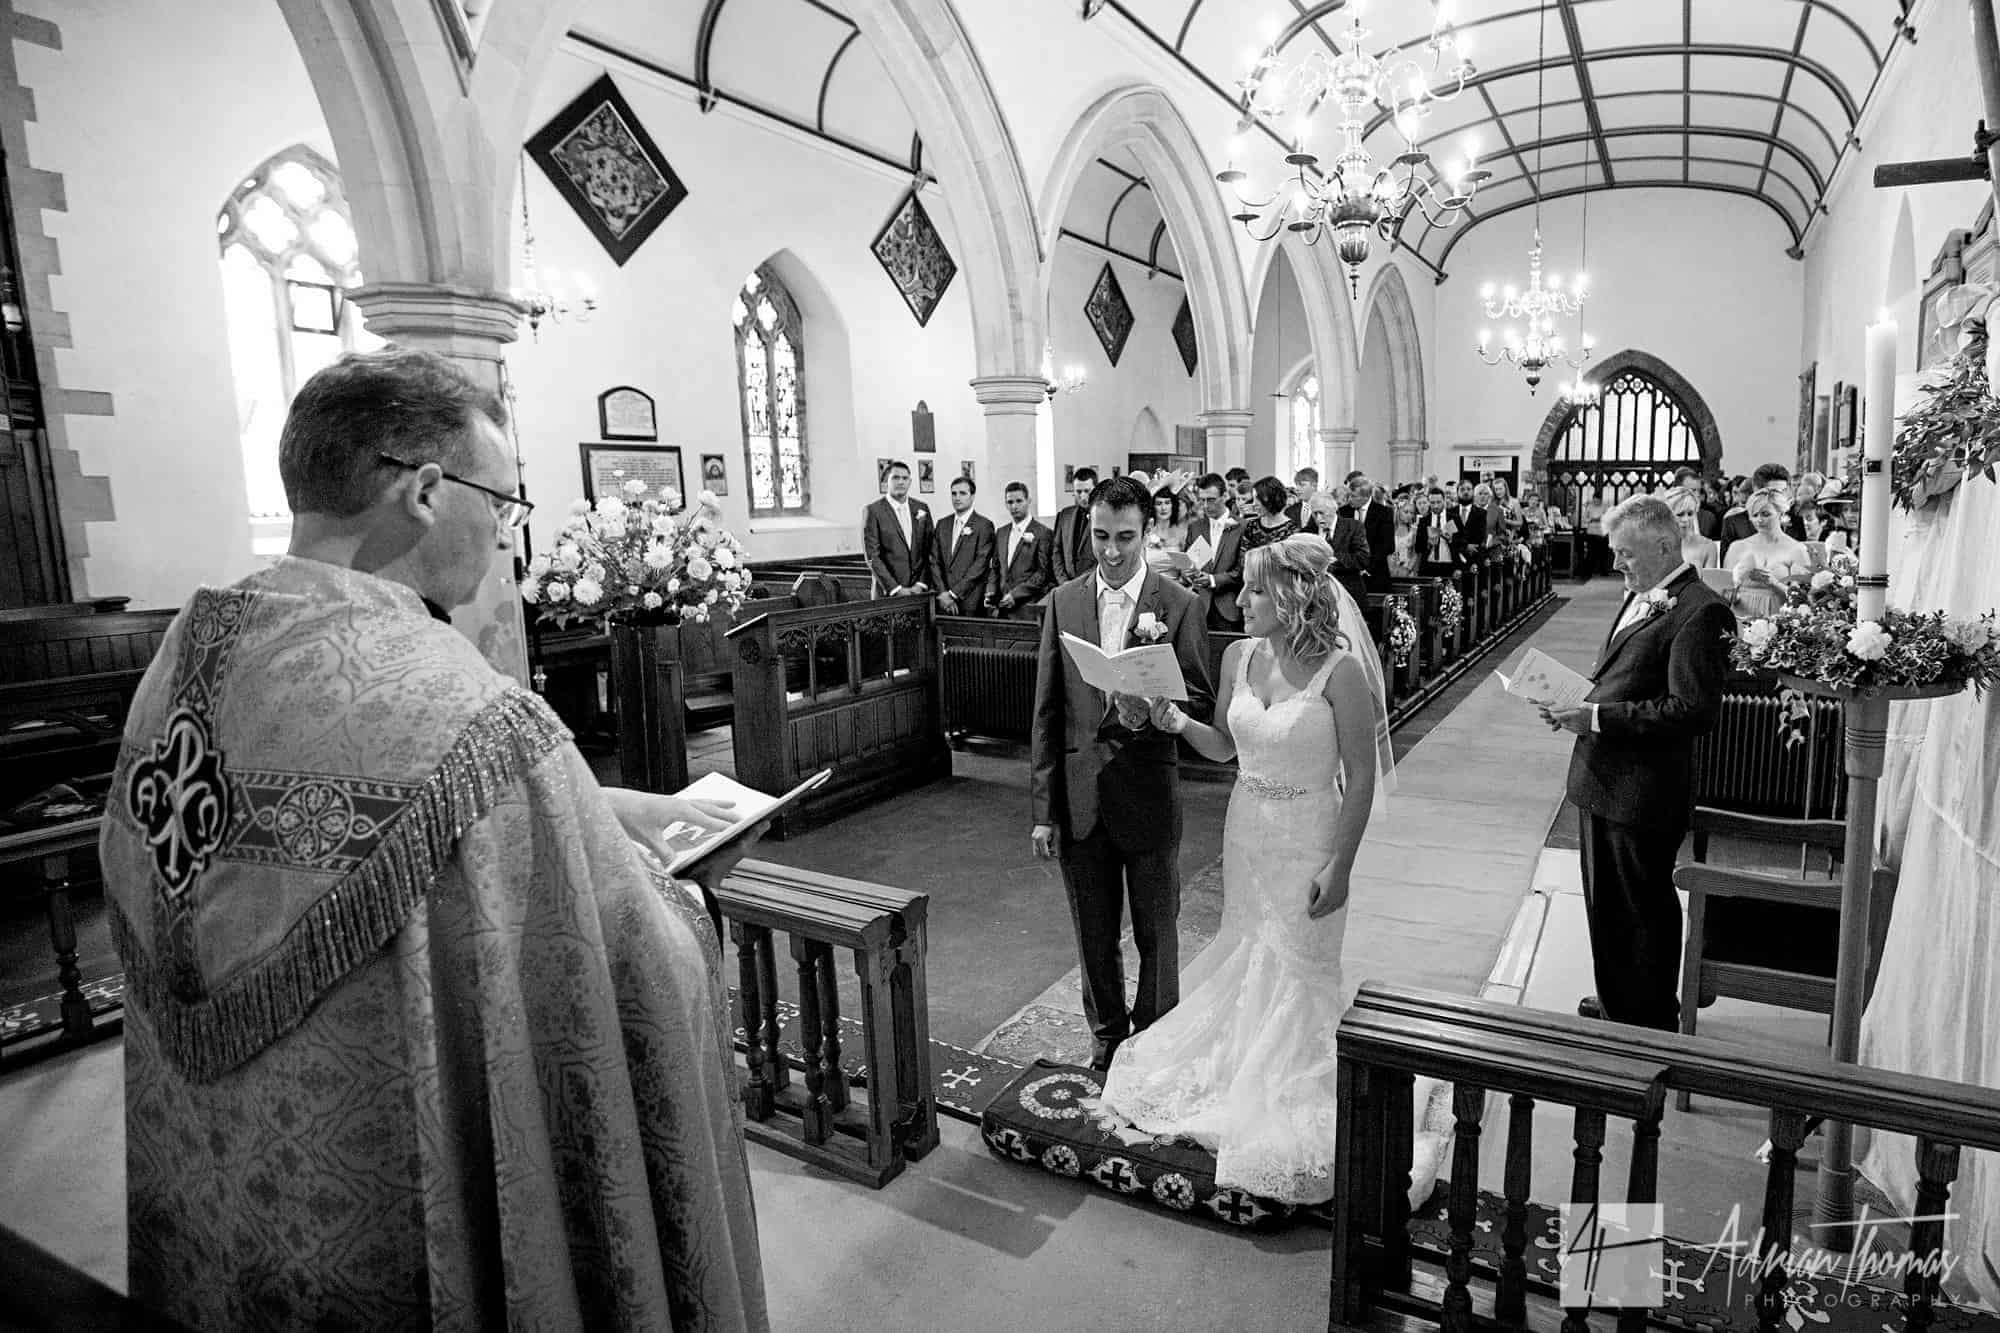 Image of church during wedding service.